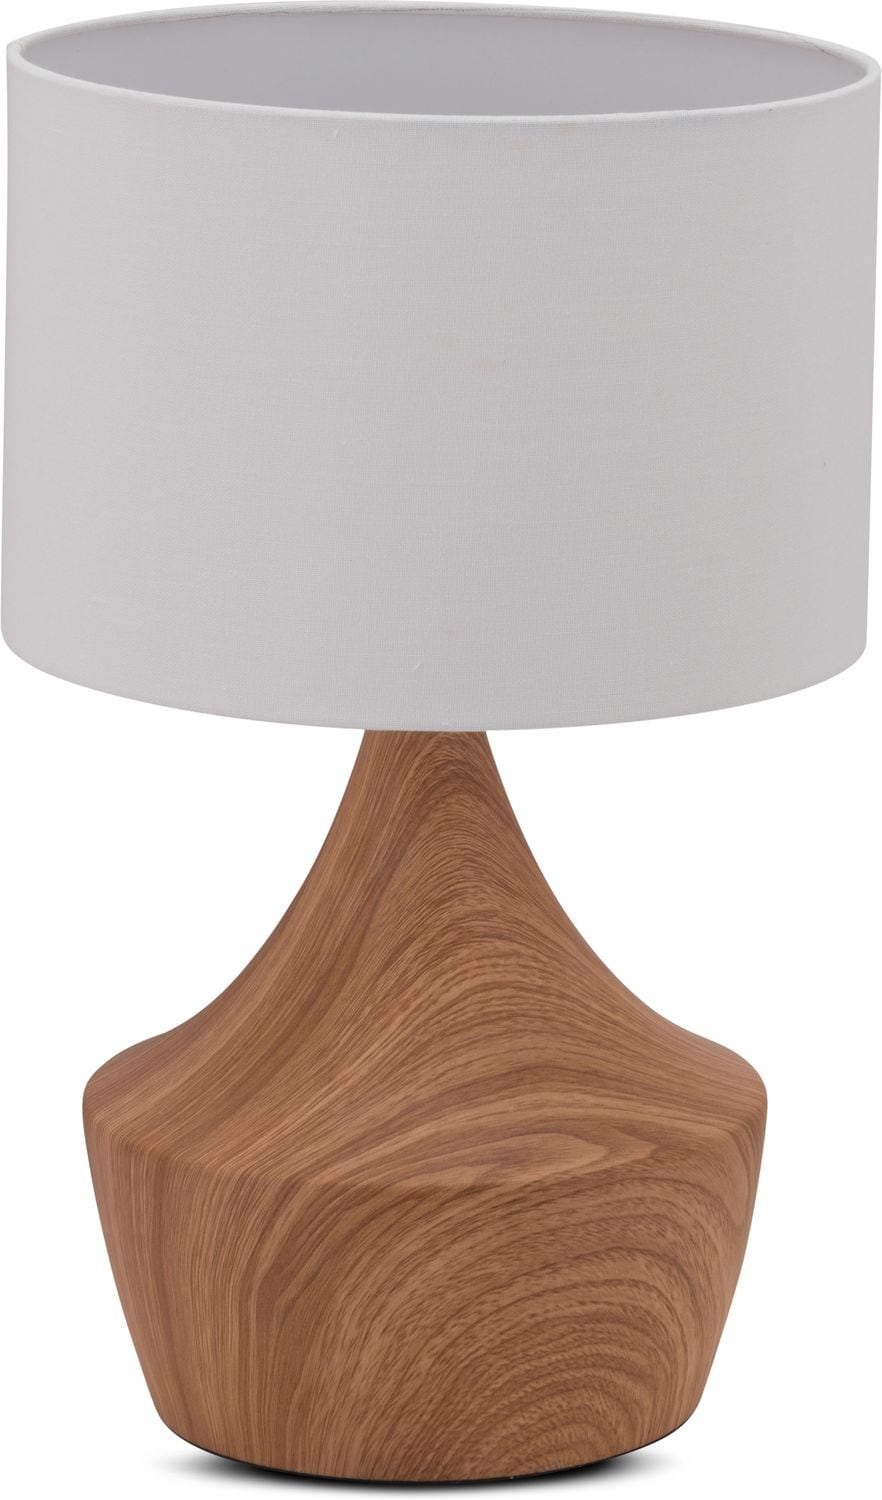 Home Accessories - Wood Table Lamp - Natural